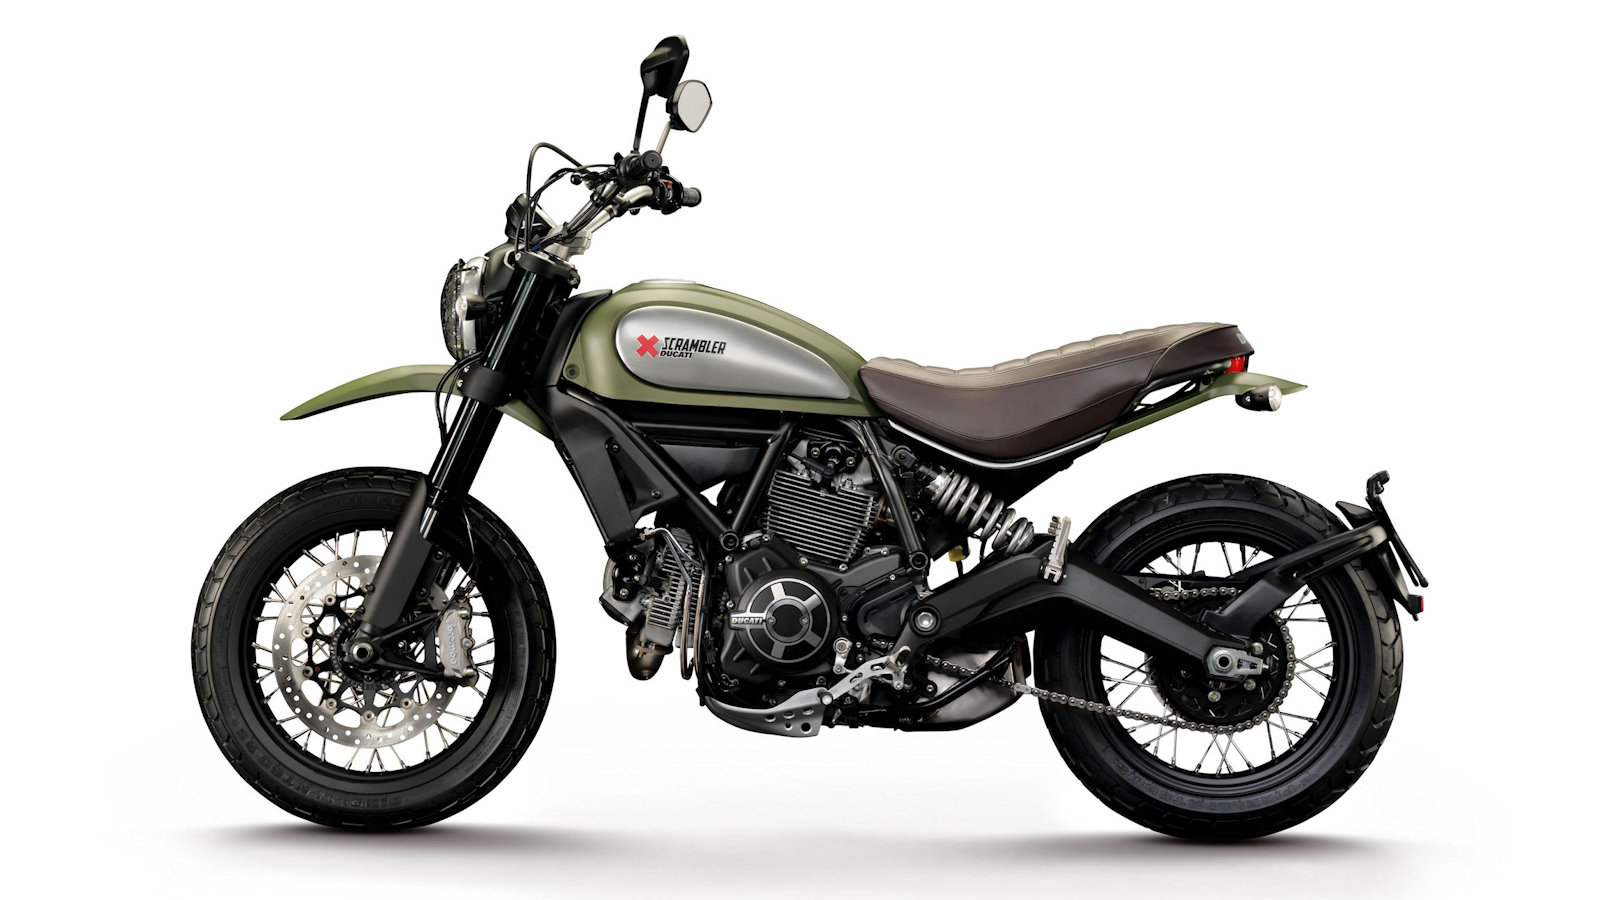 2016 ducati scrambler picture 671169 motorcycle review. Black Bedroom Furniture Sets. Home Design Ideas